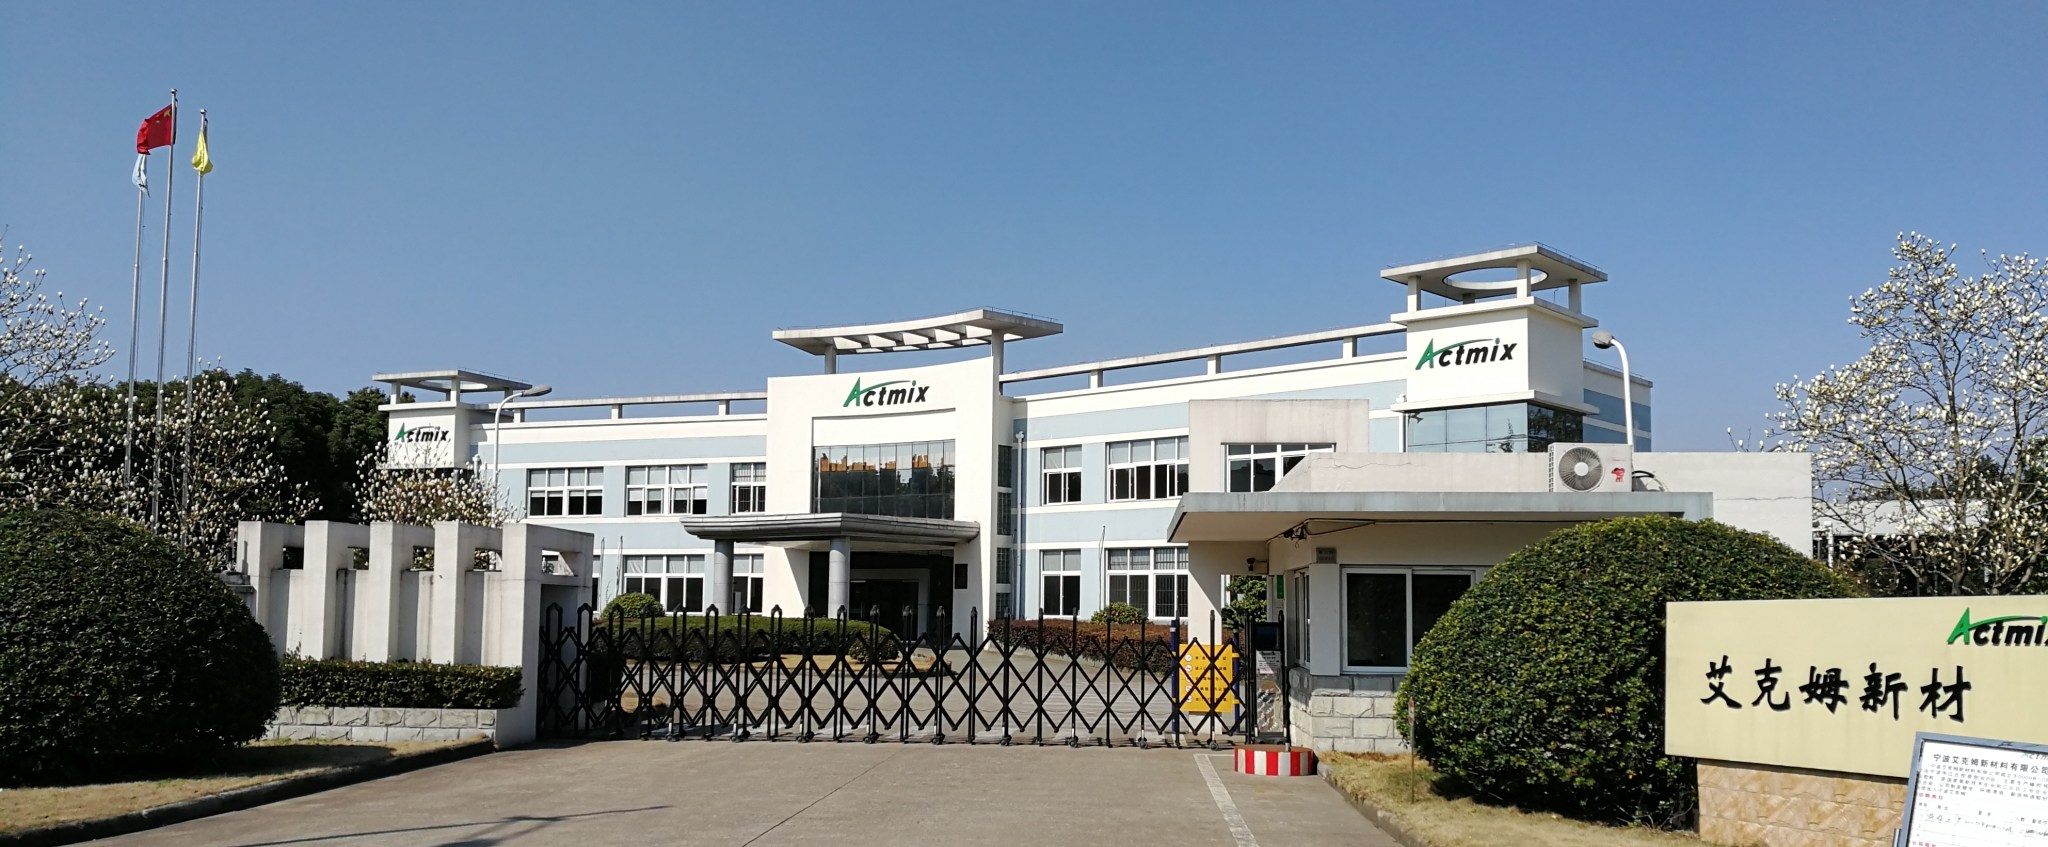 Ningbo Actmix Rubber Chemicals Co., Ltd.